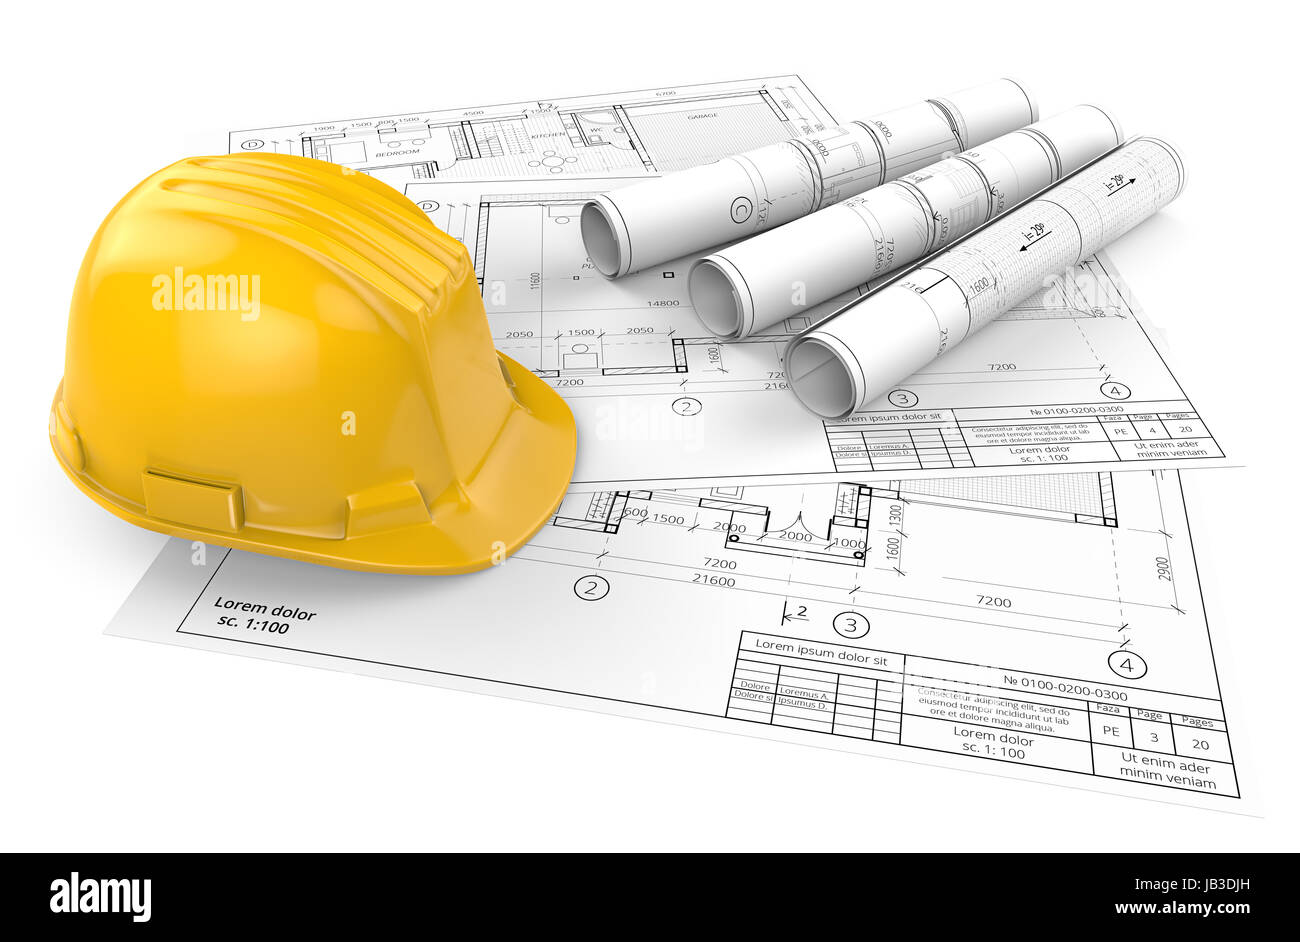 Yellow Hardhat On Top Of Generic Architectural Blueprints Drawings And Sketches 3 Rolls 3D Render